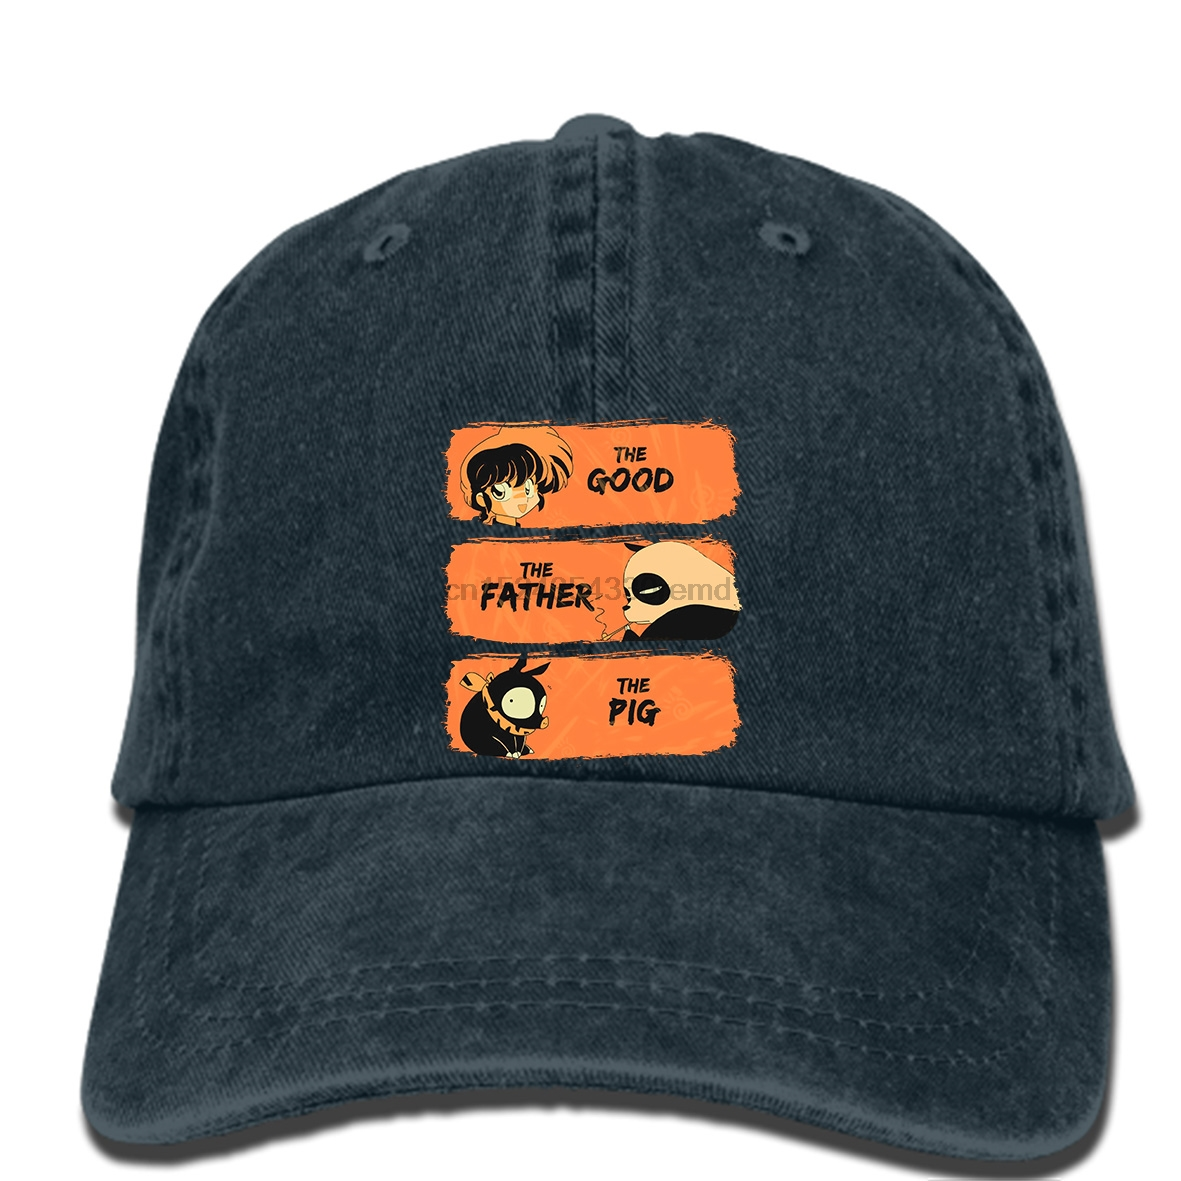 Men Hat Baseball-Caps Printed New-Style The Hip-Hop Good-The-Father-The-Pig Ranma